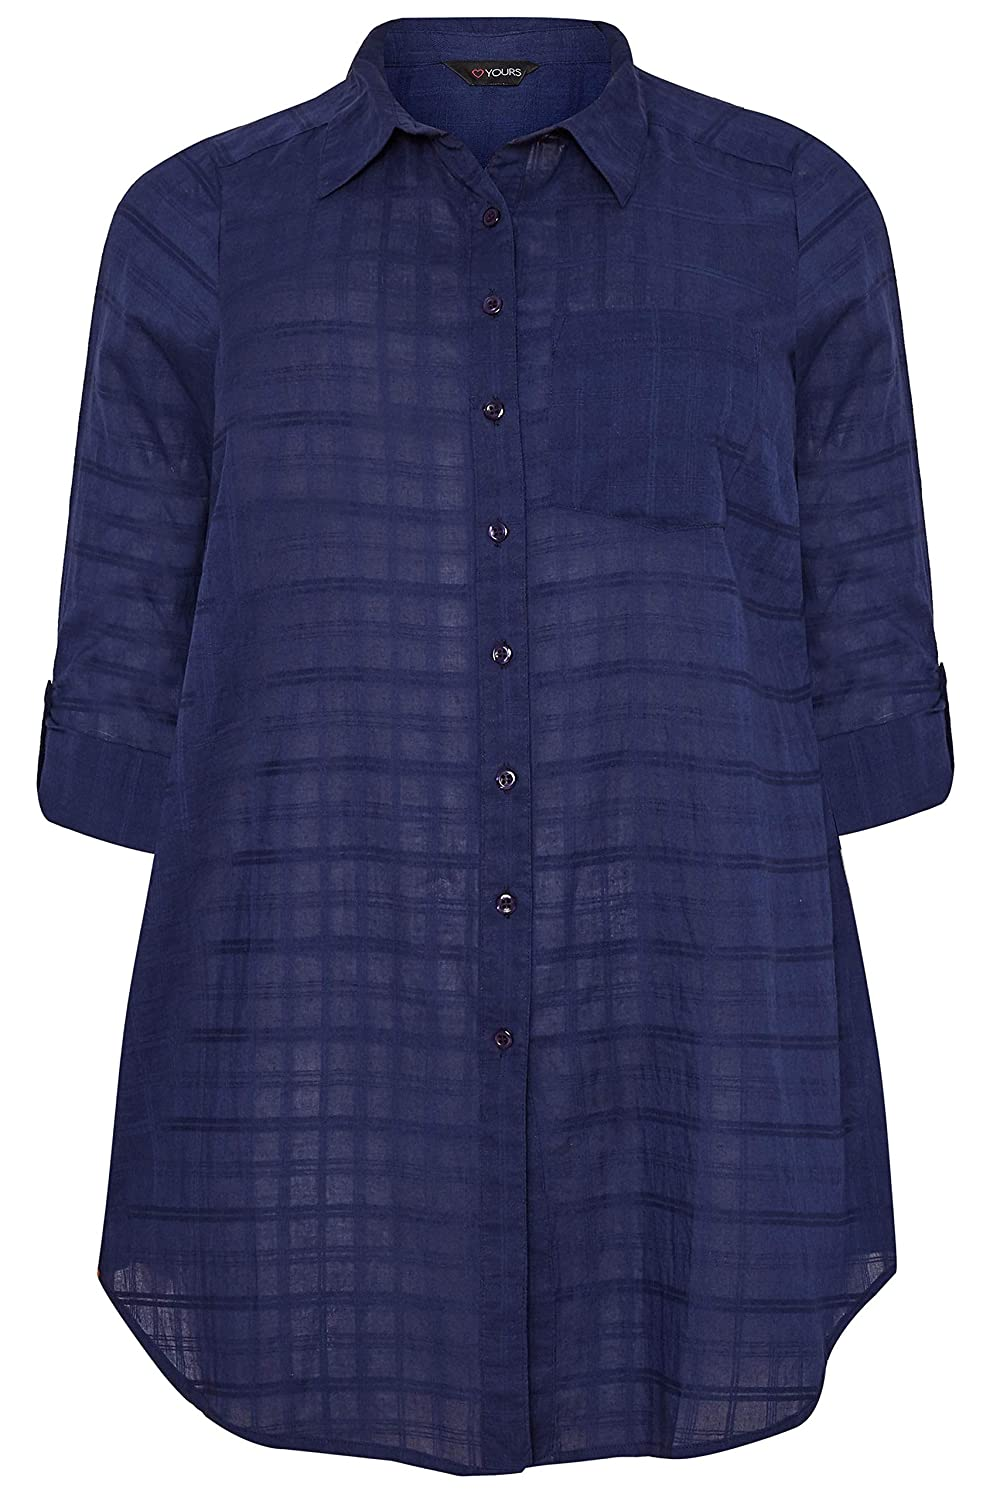 Yours Clothing Women/'s Plus Size Yours London Navy Overhead Shirt